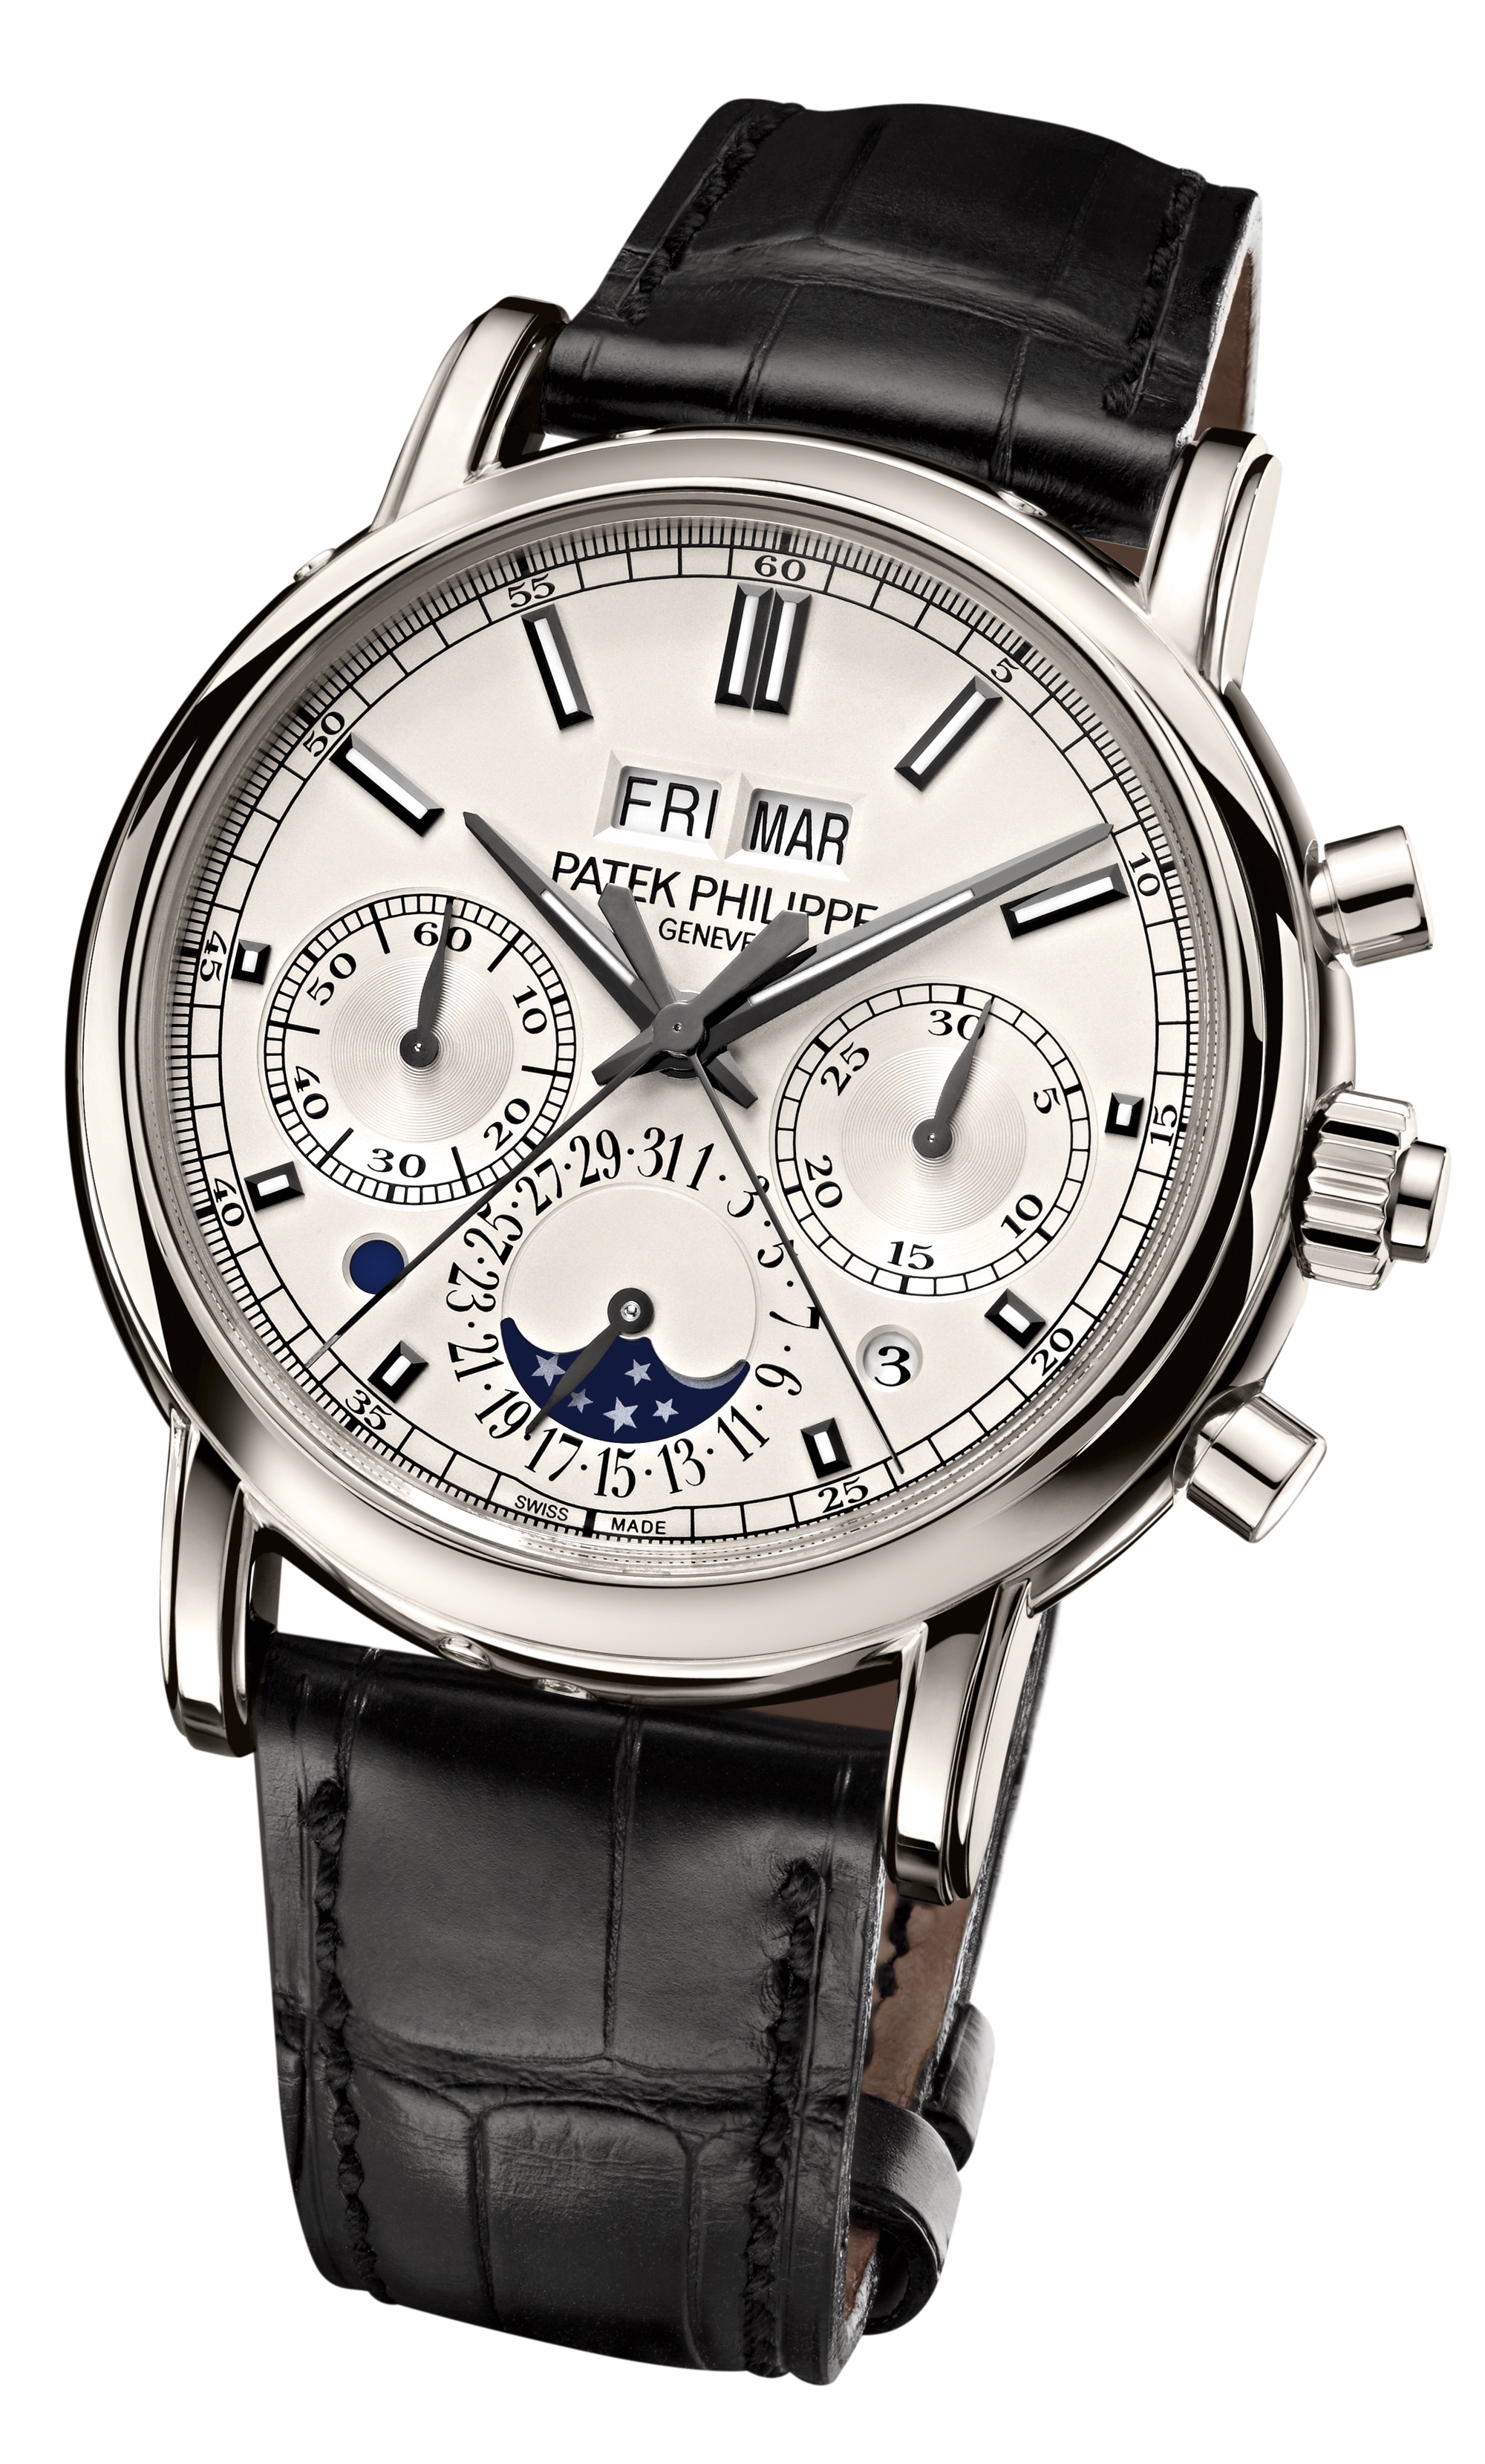 Baselworld 2012 split seconds chronograph and perpetual calendar watch by patek philippe for Patek phillipe watch